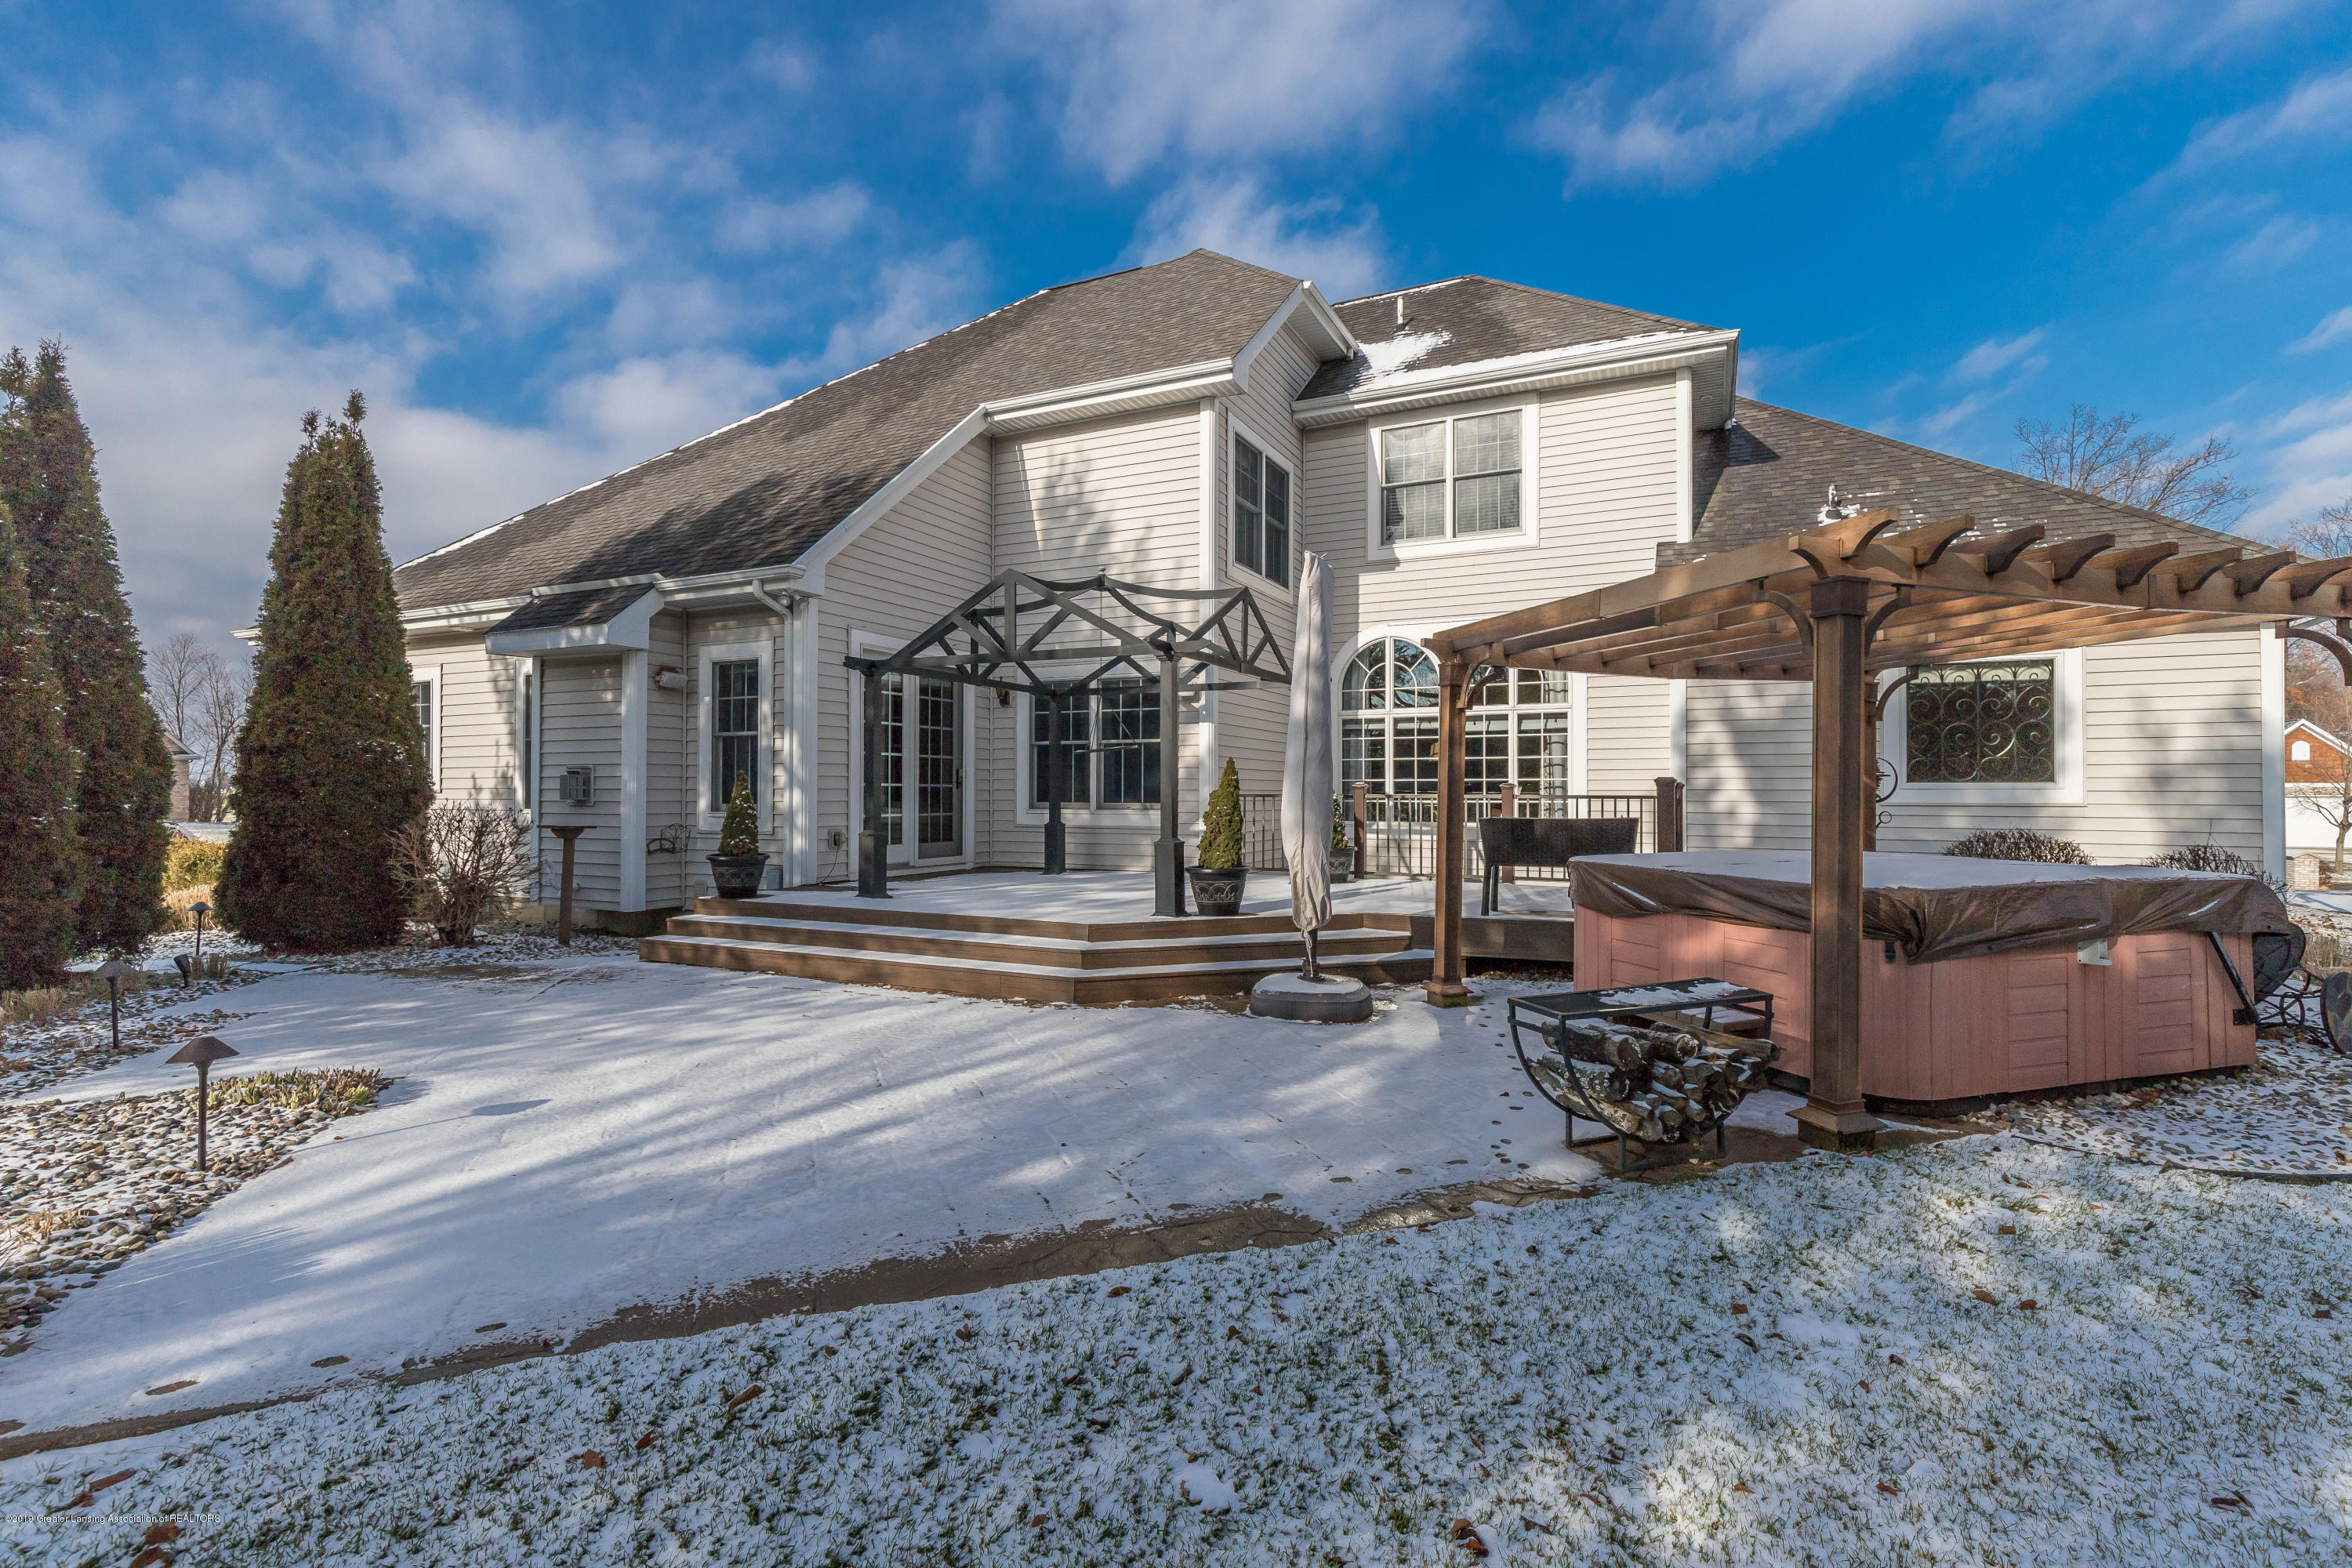 3401 Canopy Dr - canopyback (1 of 1) - 54